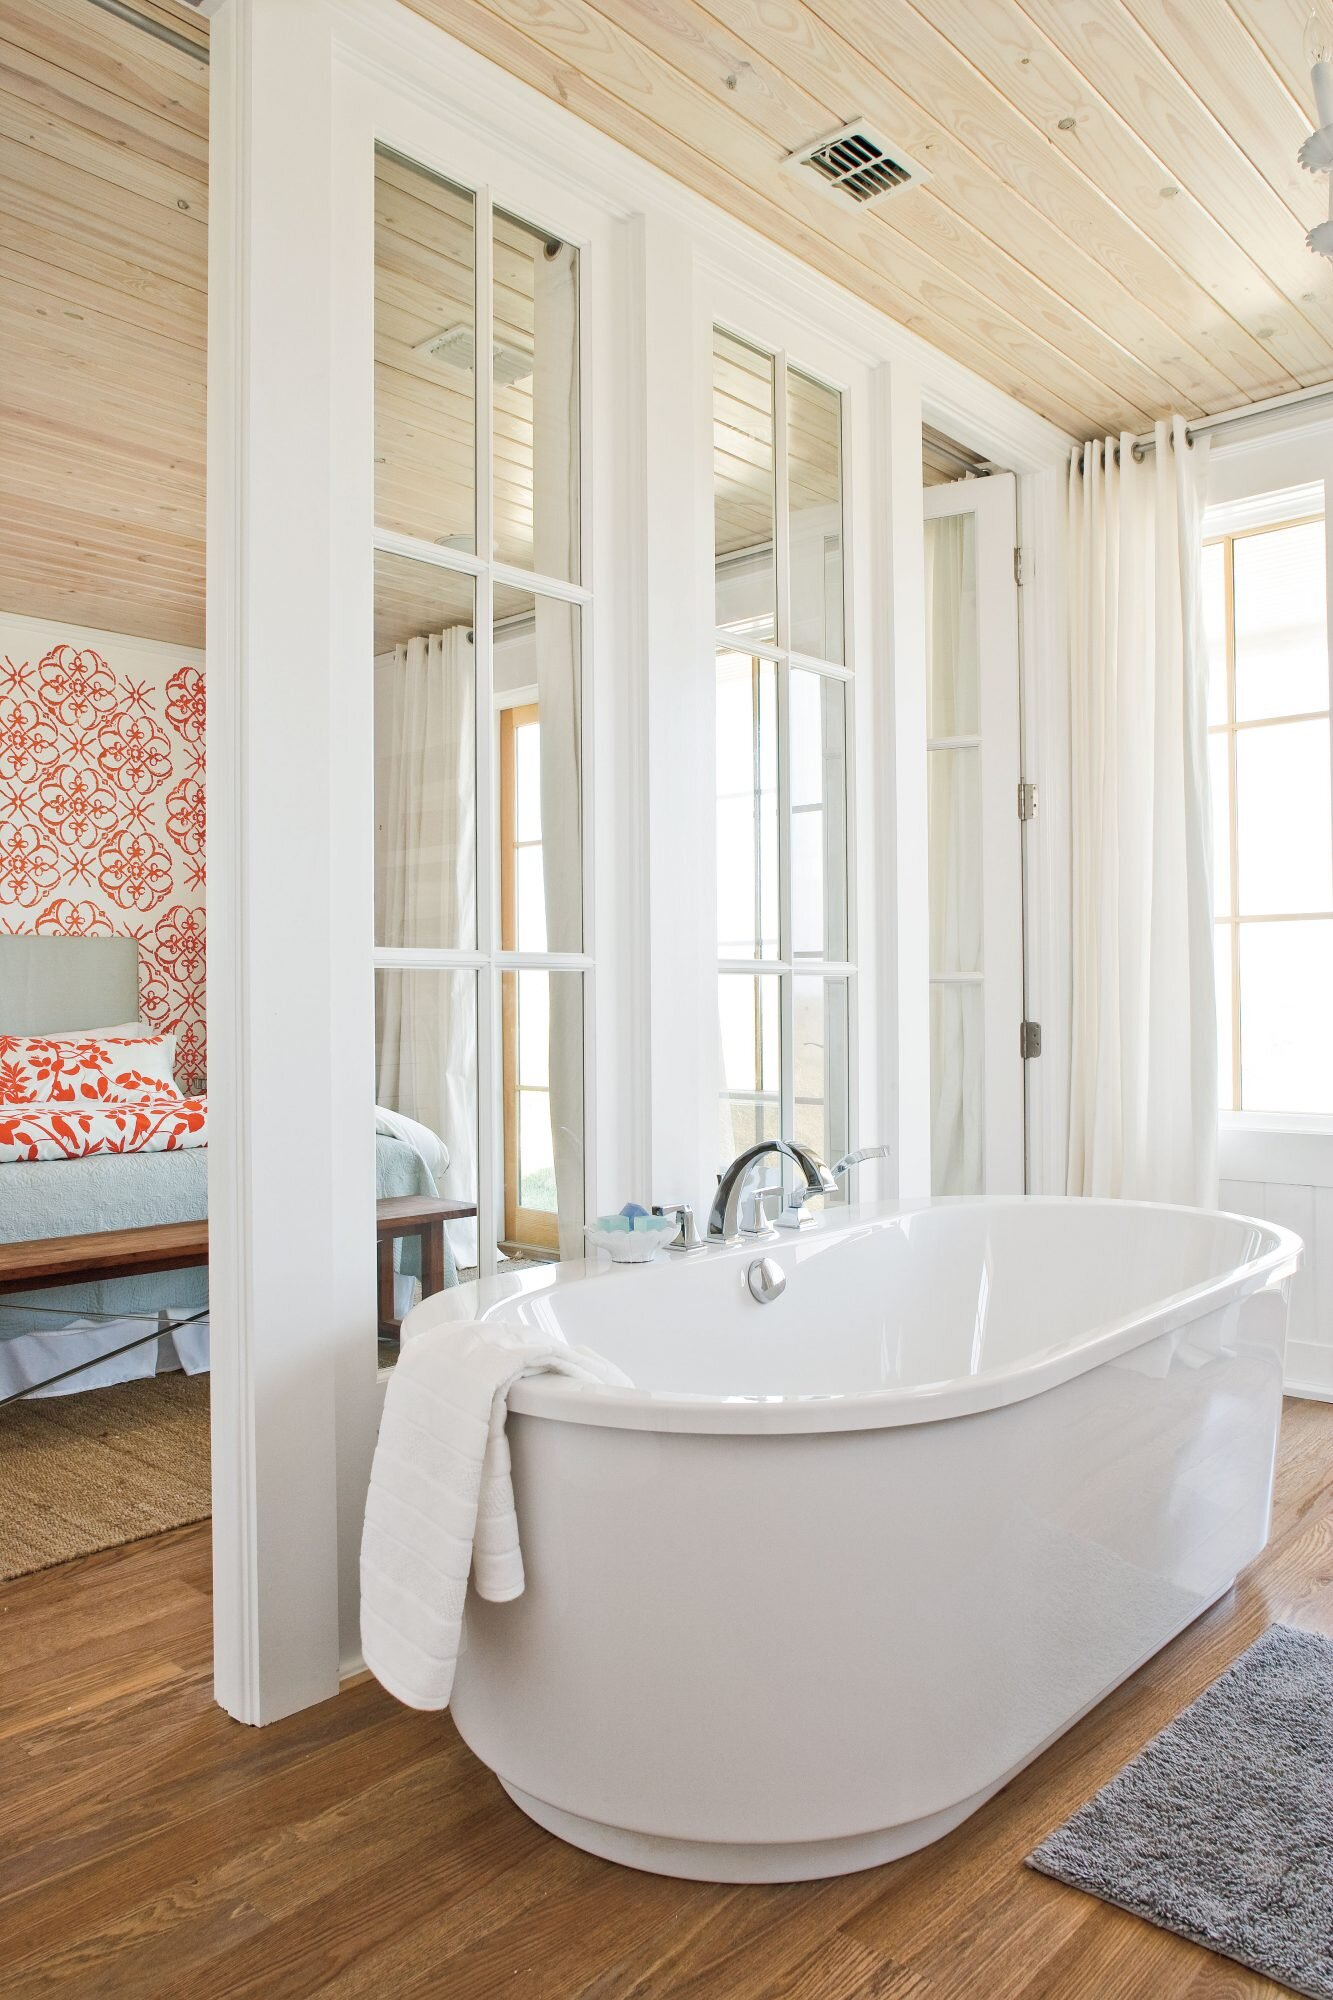 7 Beach-Inspired Bathroom Decorating Ideas | Southern Living